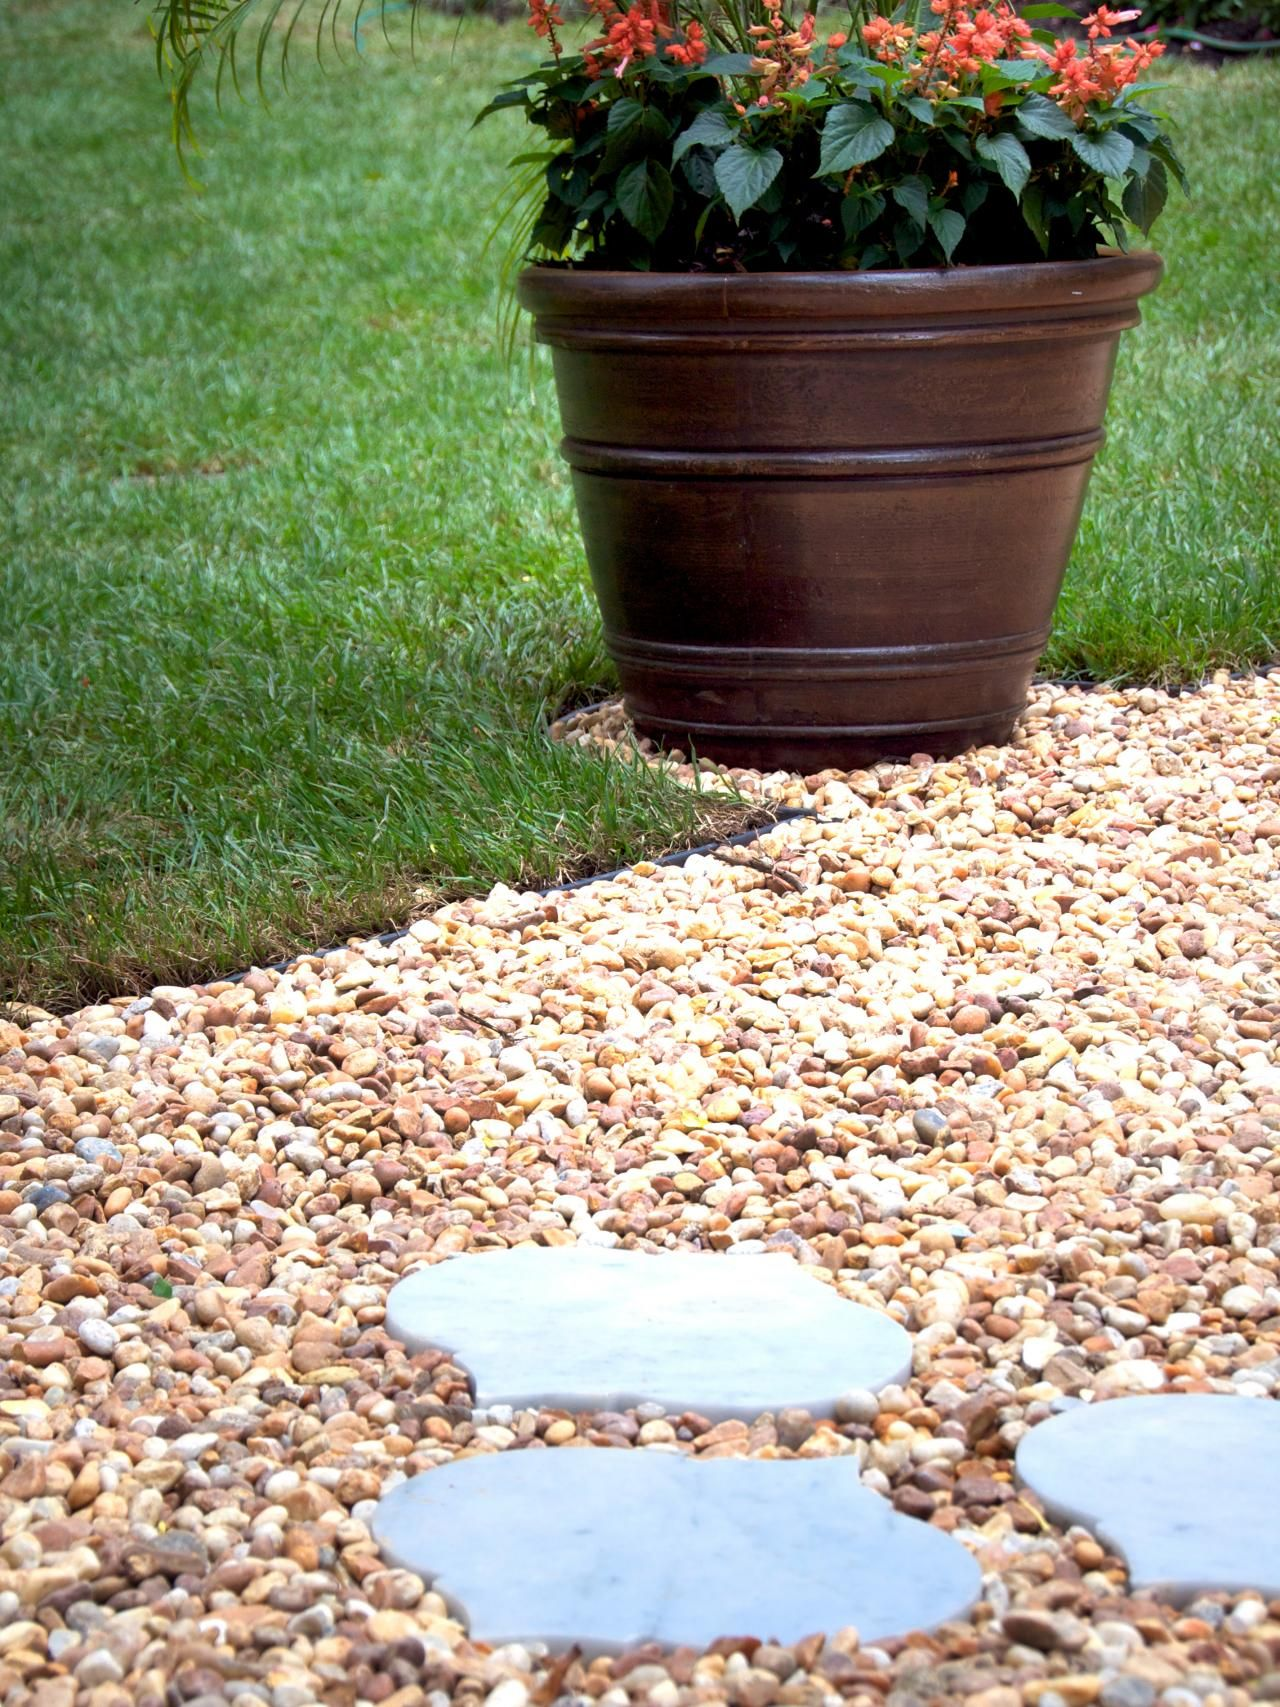 Build A Better Backyard: Easy DIY Outdoor Projects